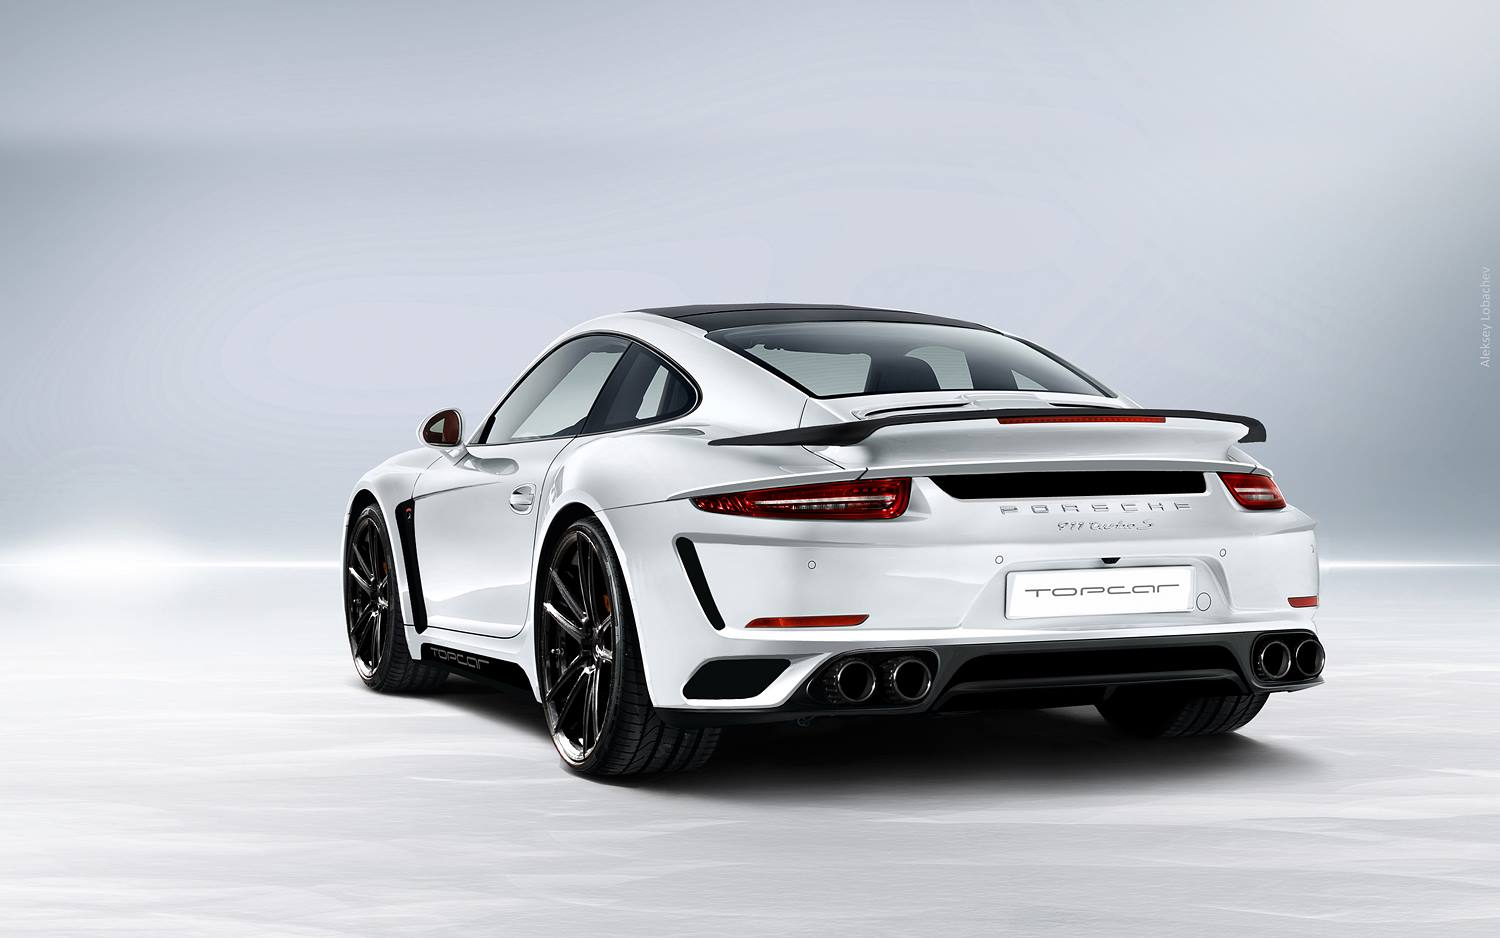 New Porsche 911 Turbo Singer Gtr Tuning Project Announced